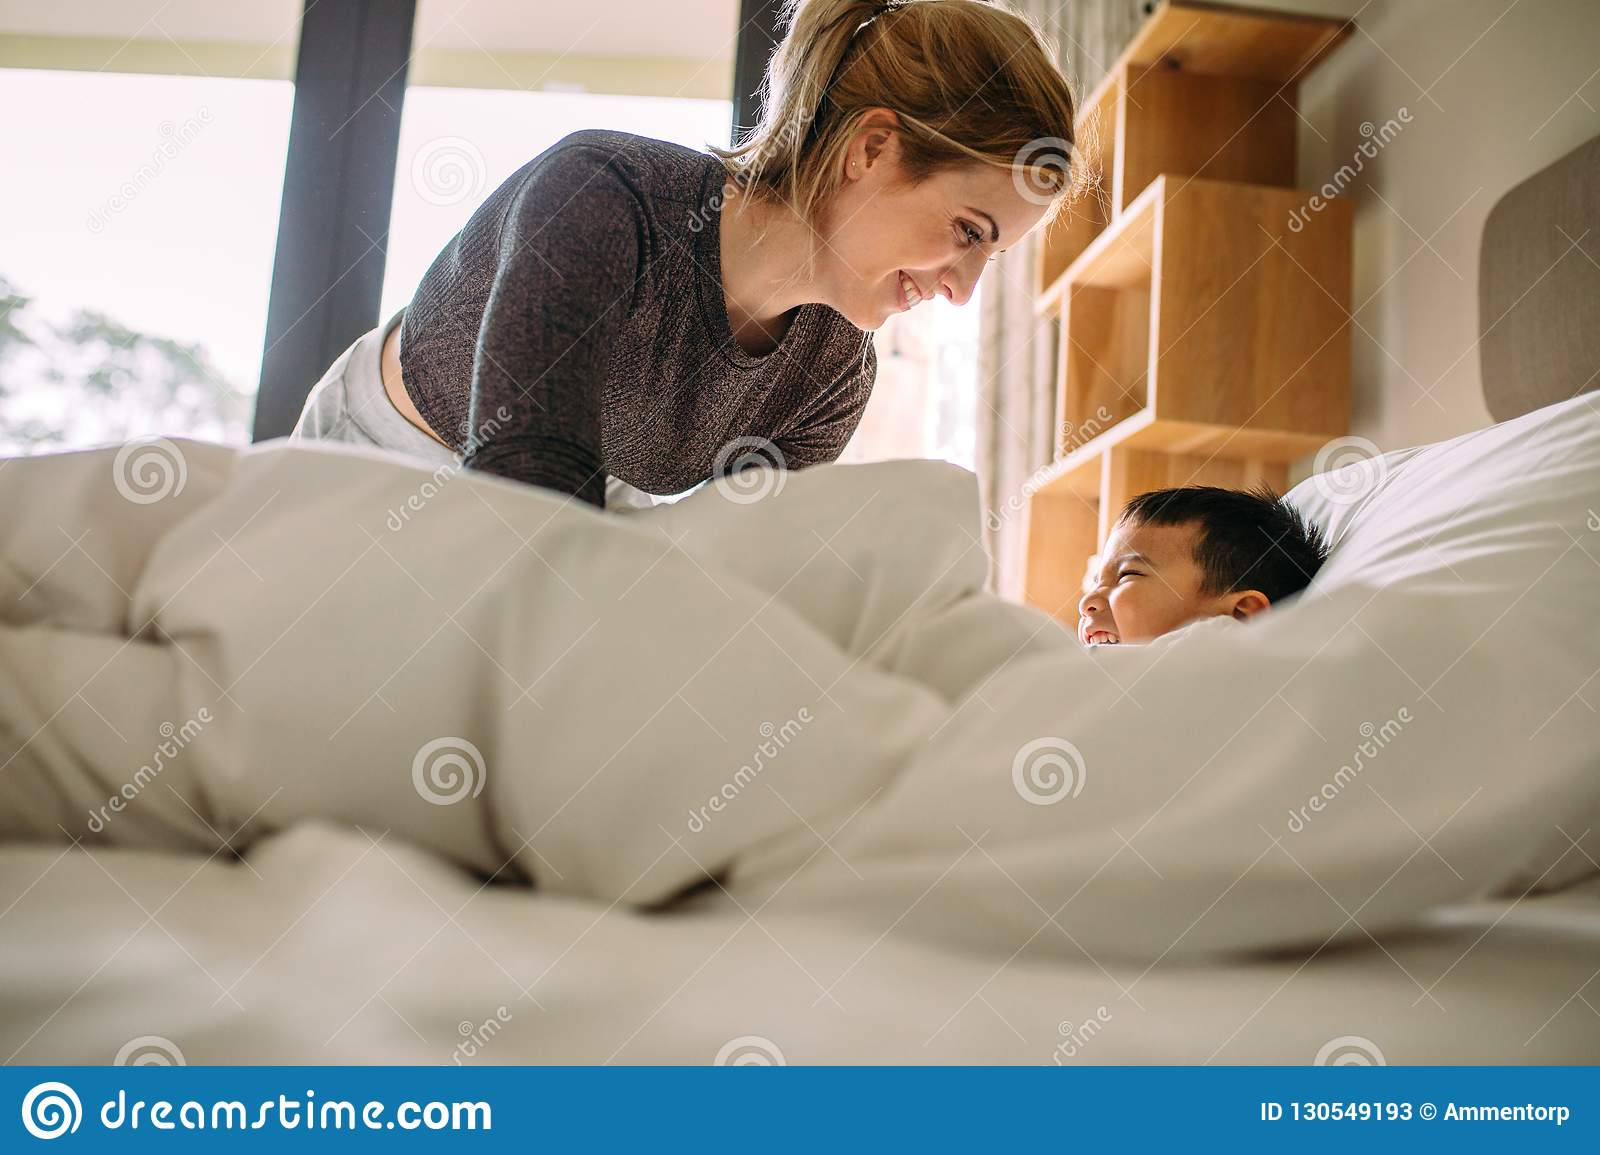 the real mom and son on the bed